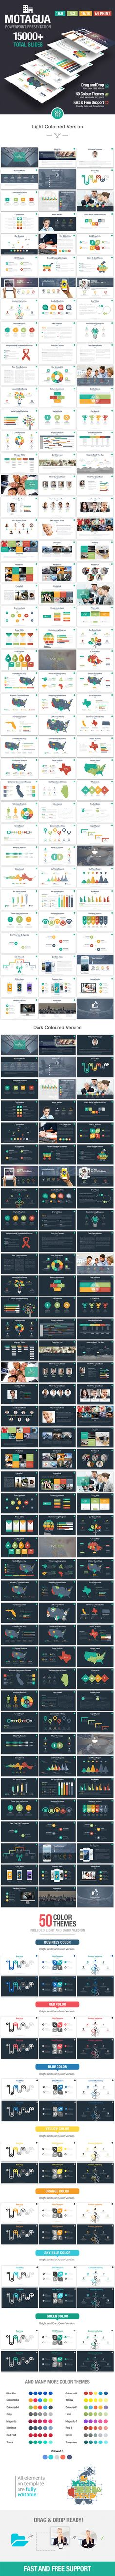 Business Innovation Powerpoint Template  Business Innovation And